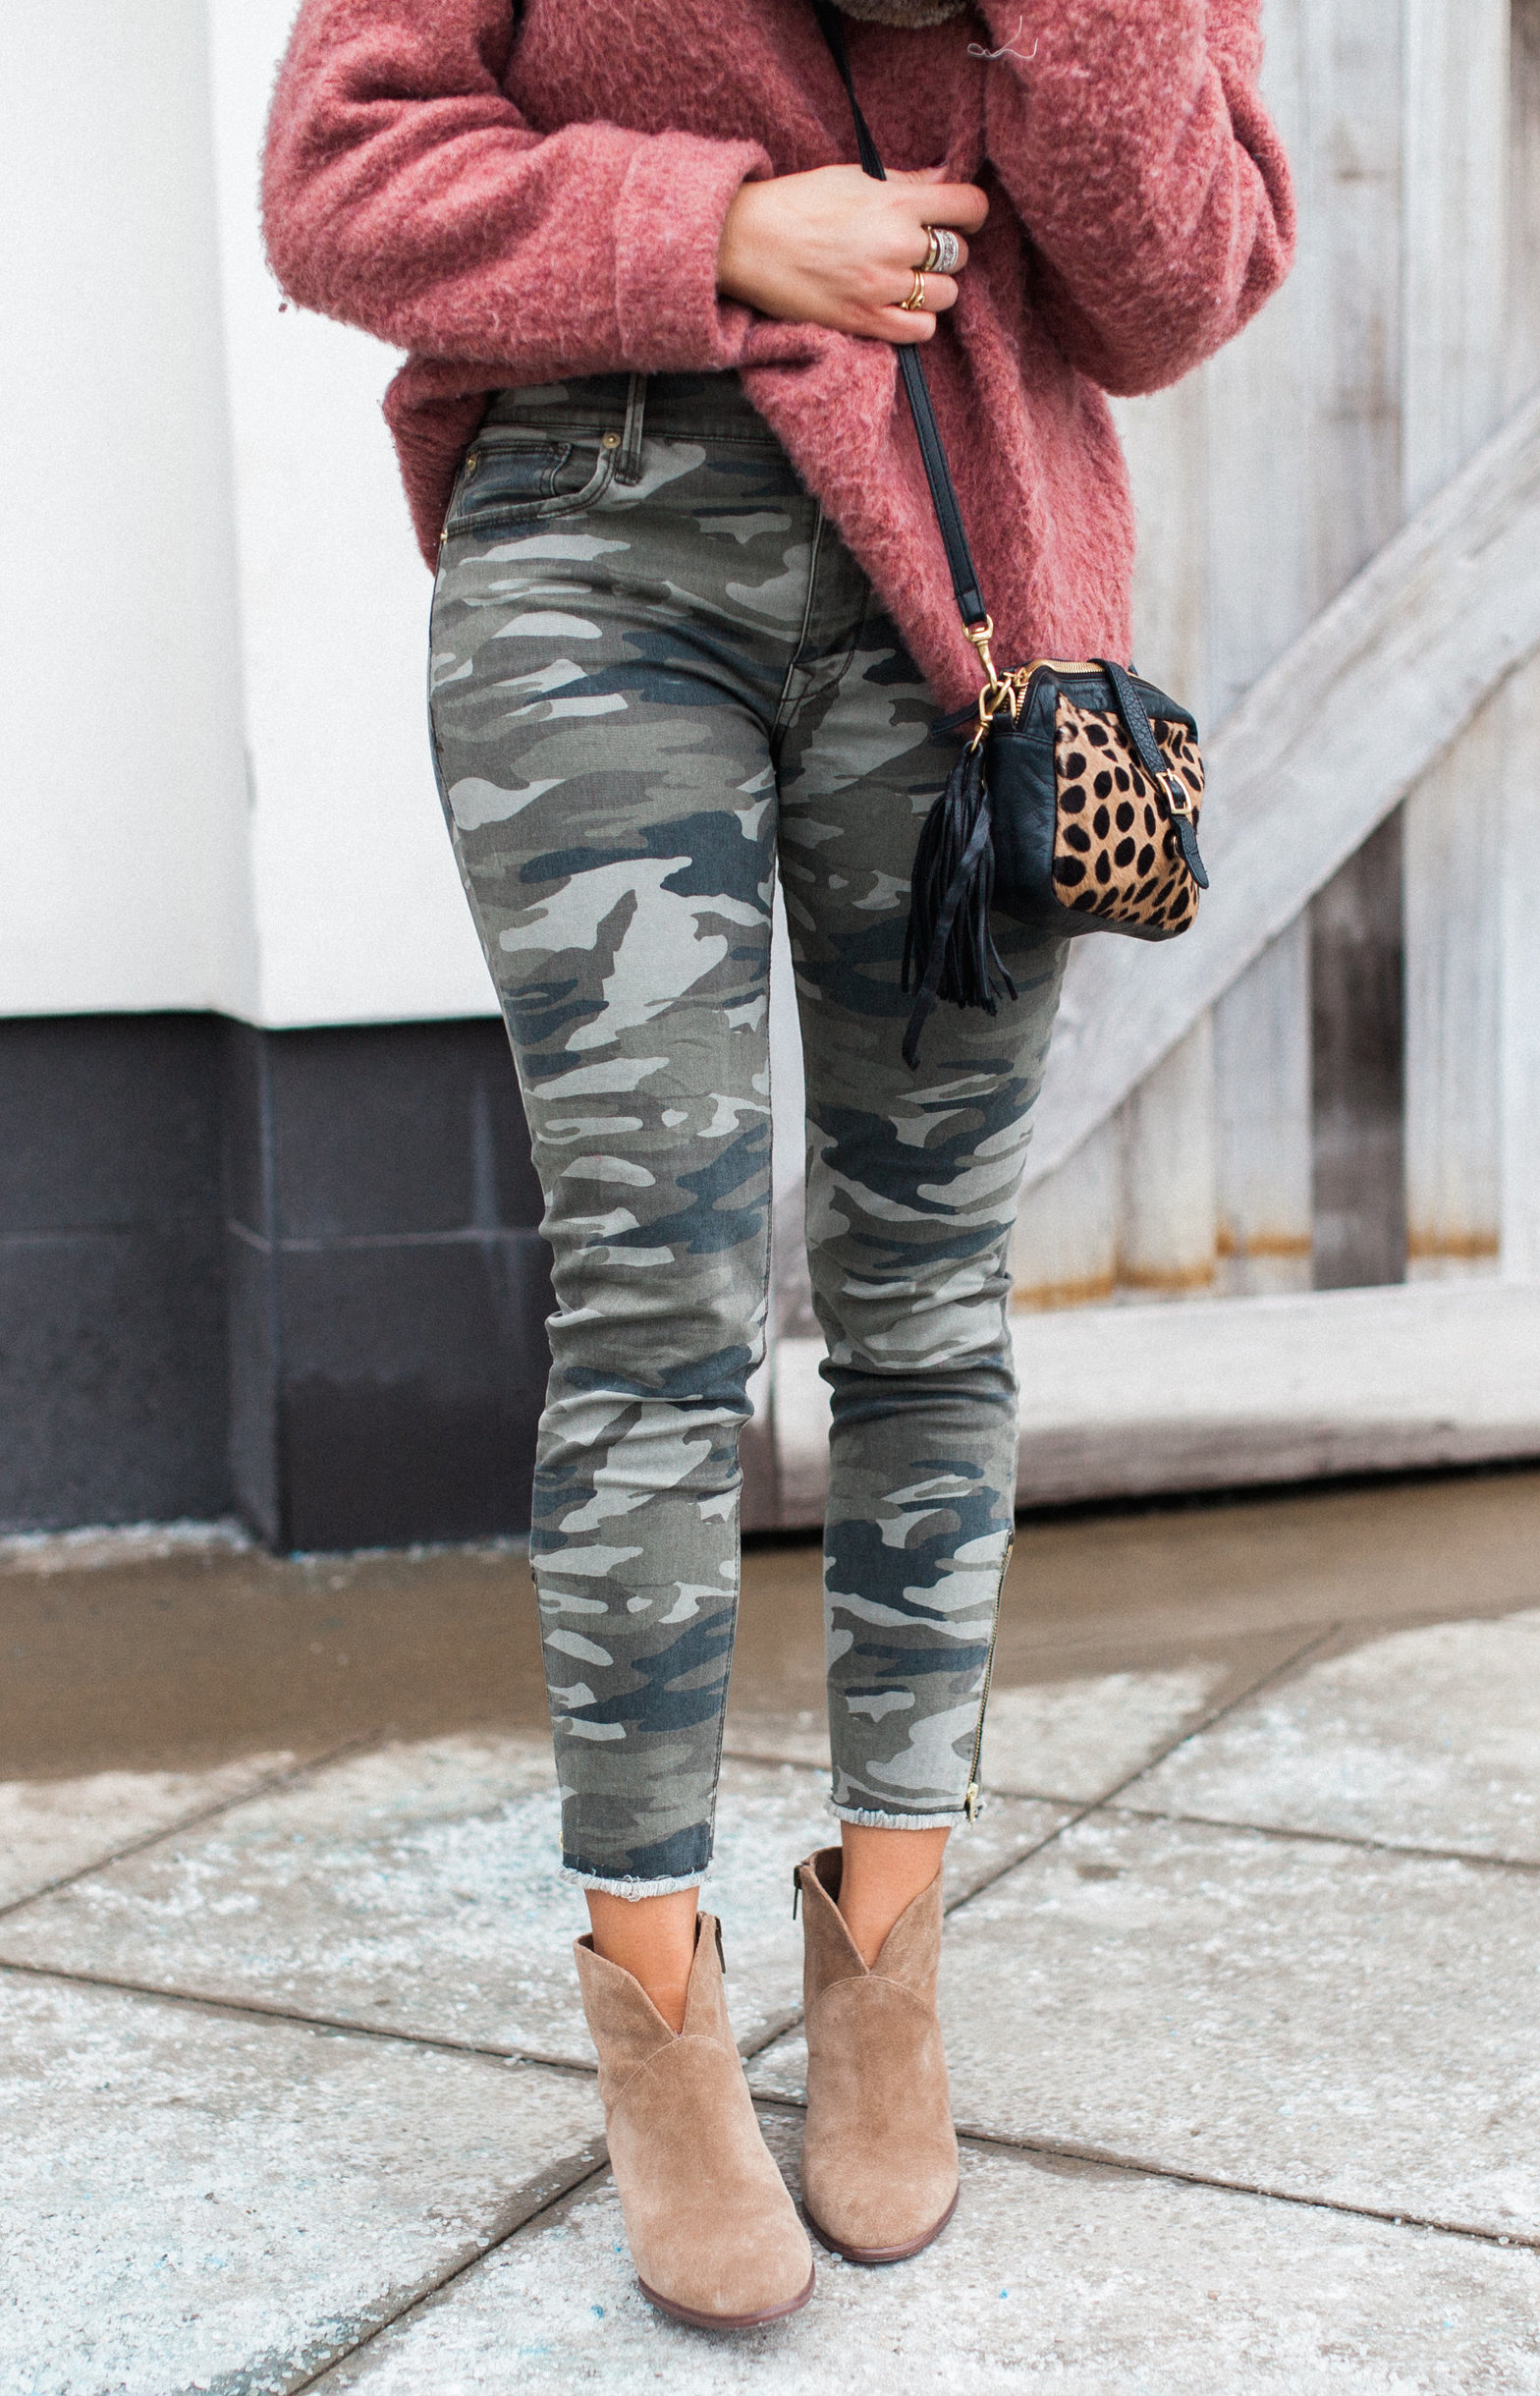 Another way to style camo pants/ cozy way to wear camo pants